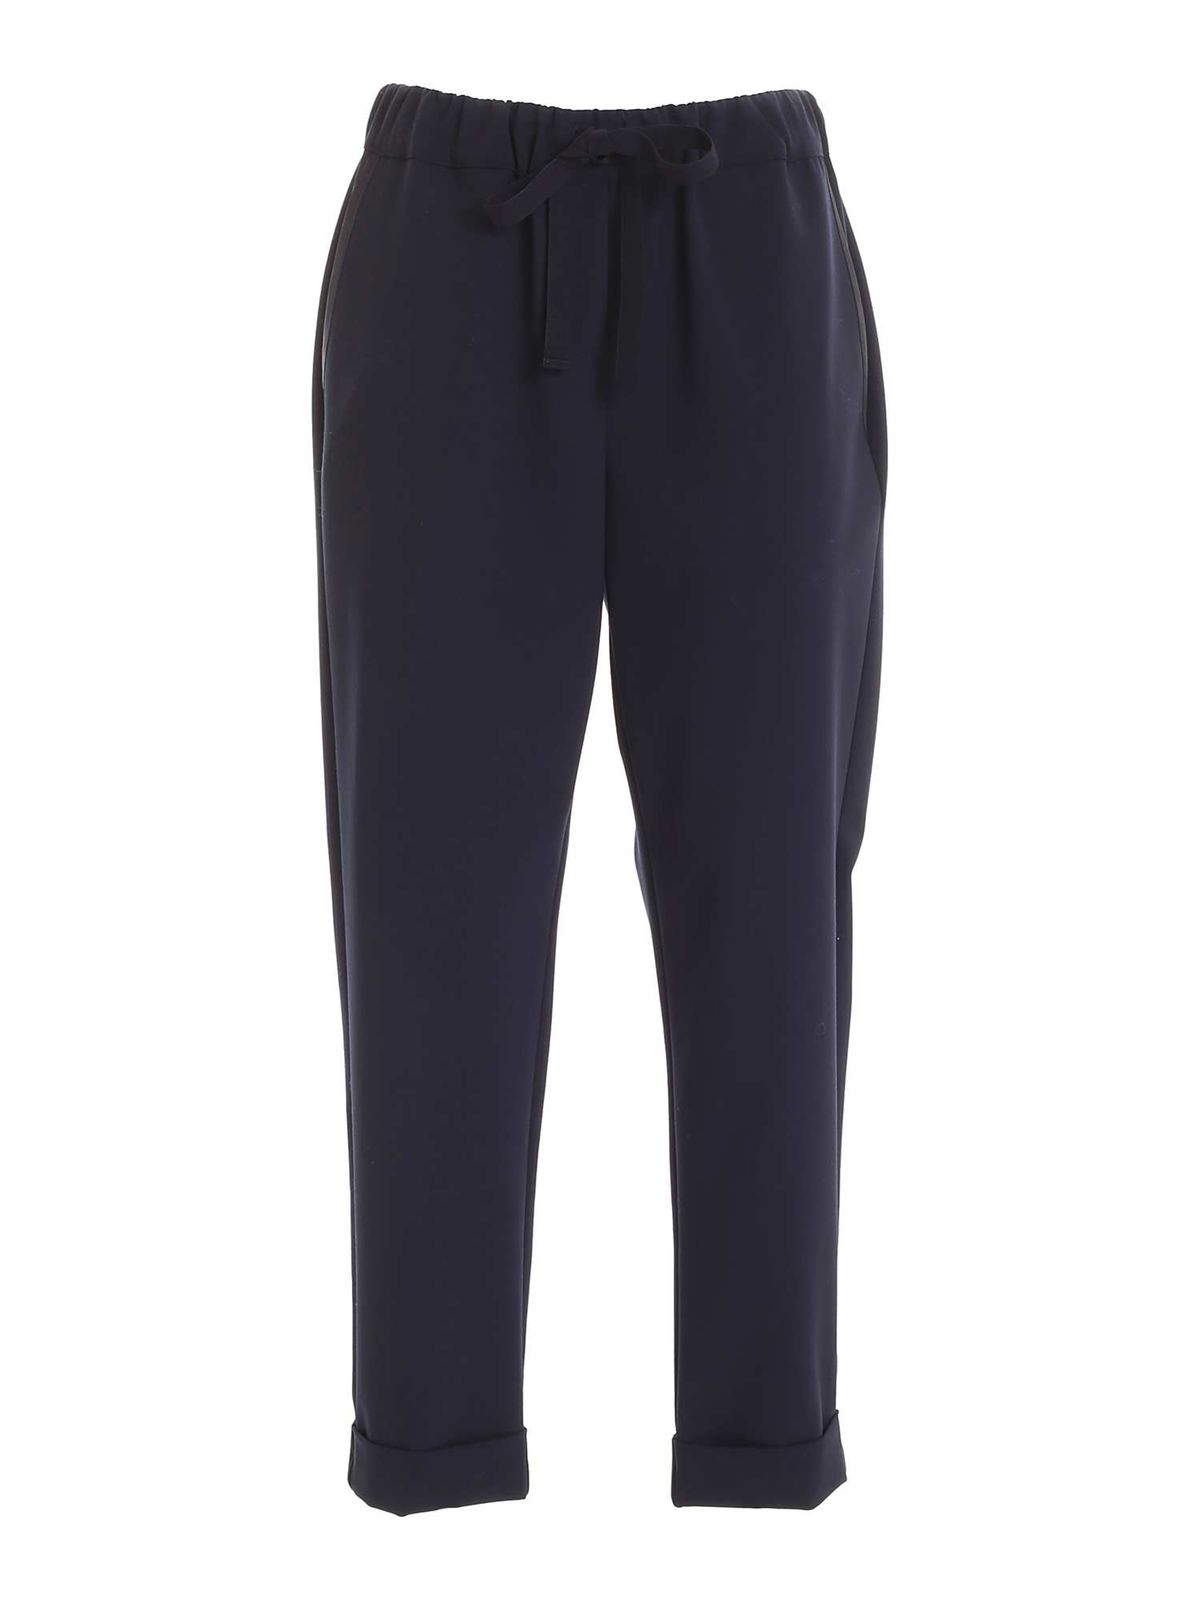 SEMICOUTURE BUDDY PANTS IN BLUE